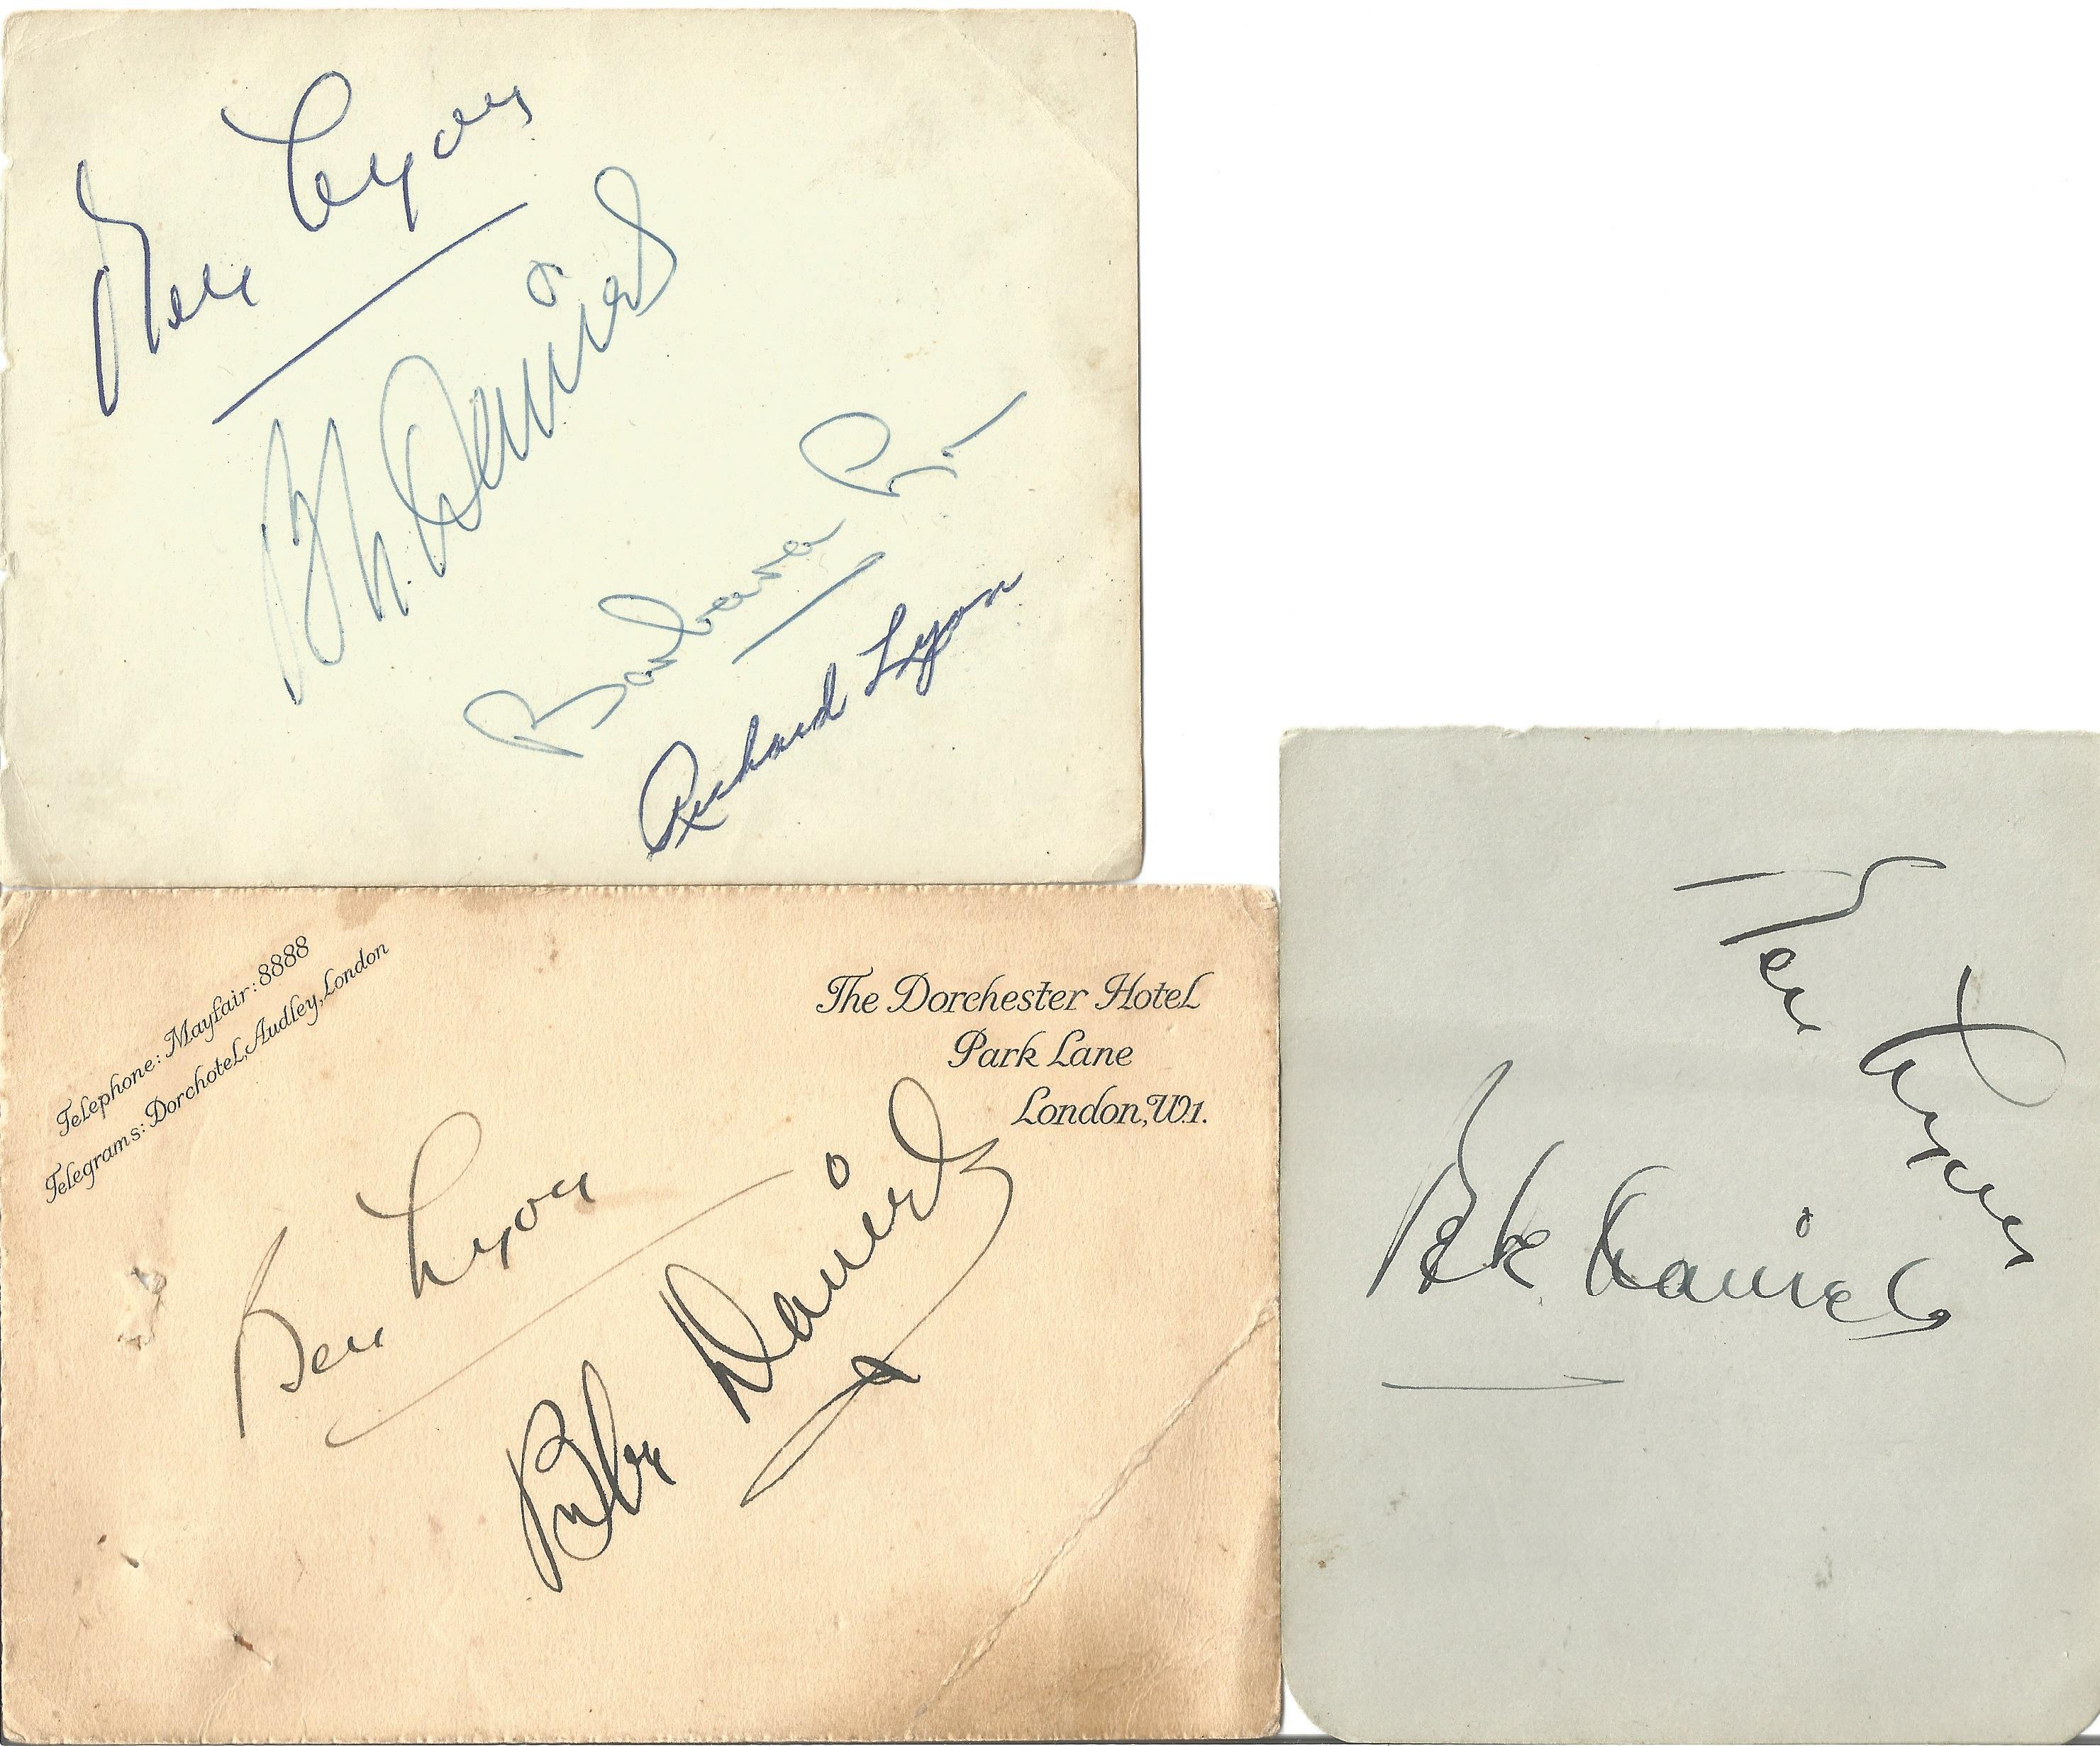 Ben Lyon and fam signed collection. Good condition. All autographs come with a Certificate of